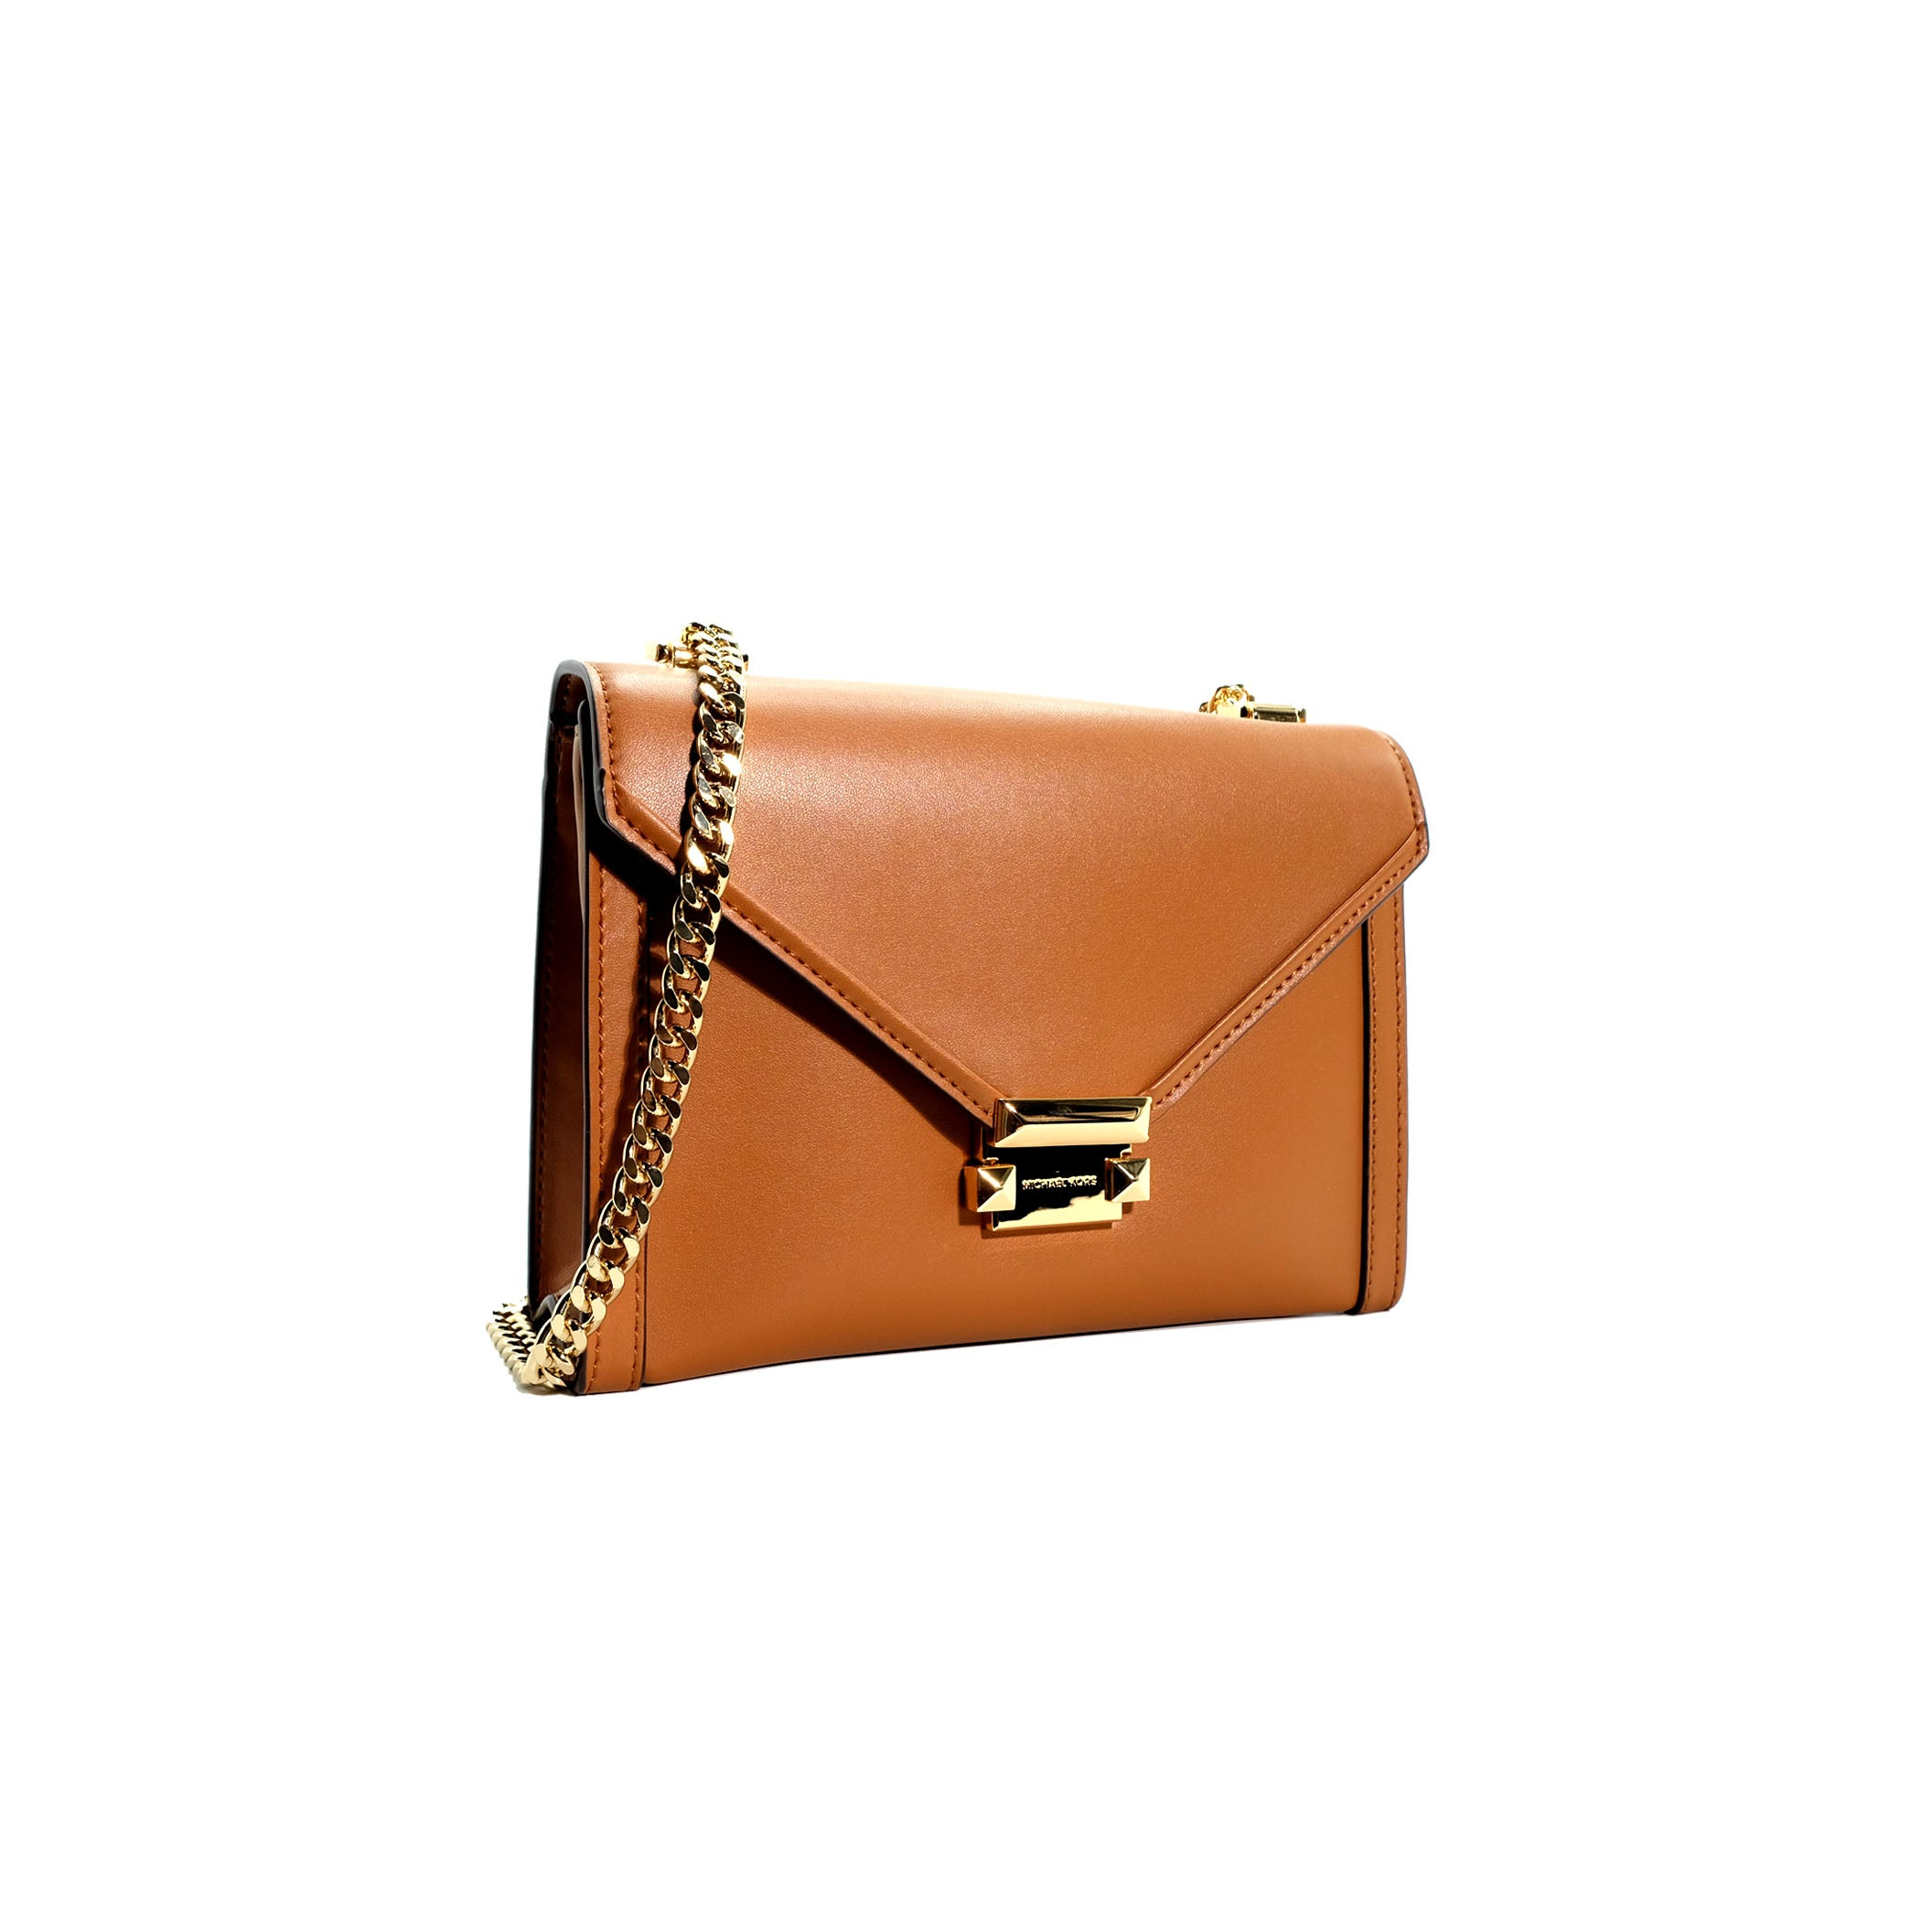 Whitney Leather Convertible Crossbody Bag